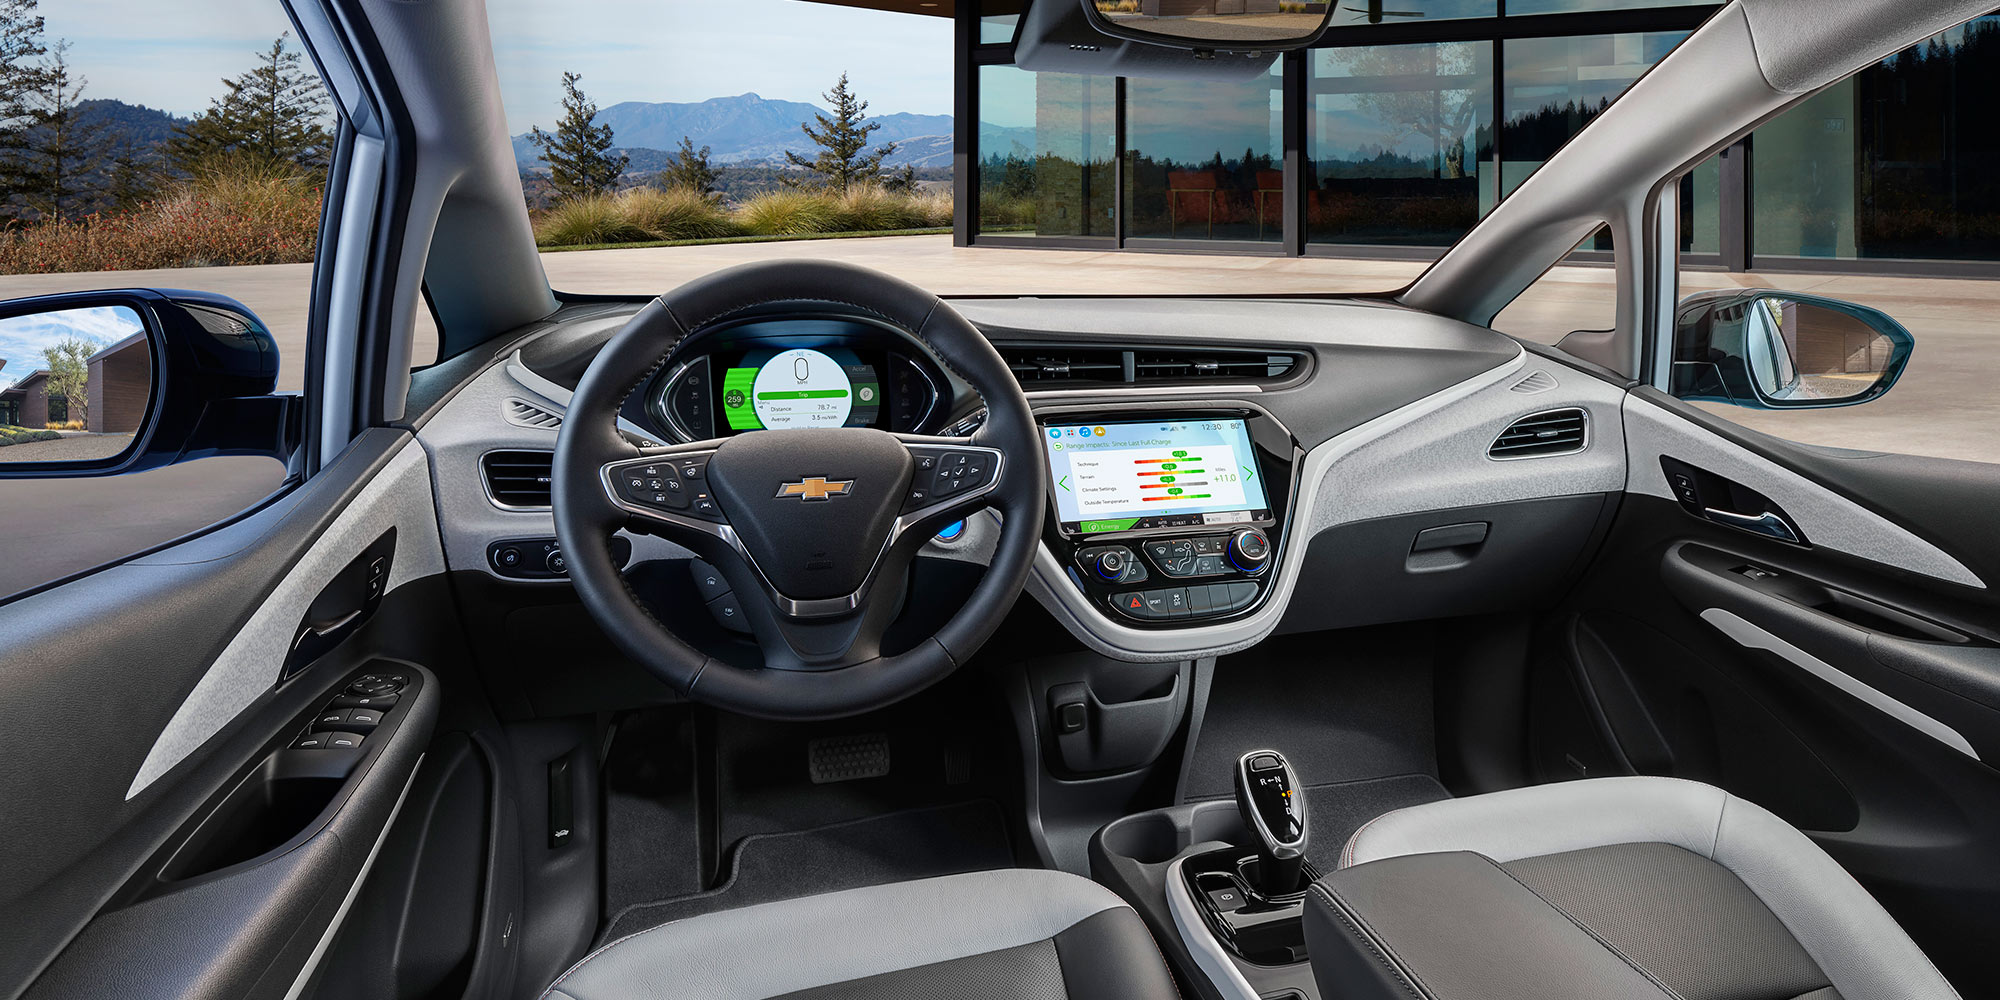 2020 Chevy Bolt